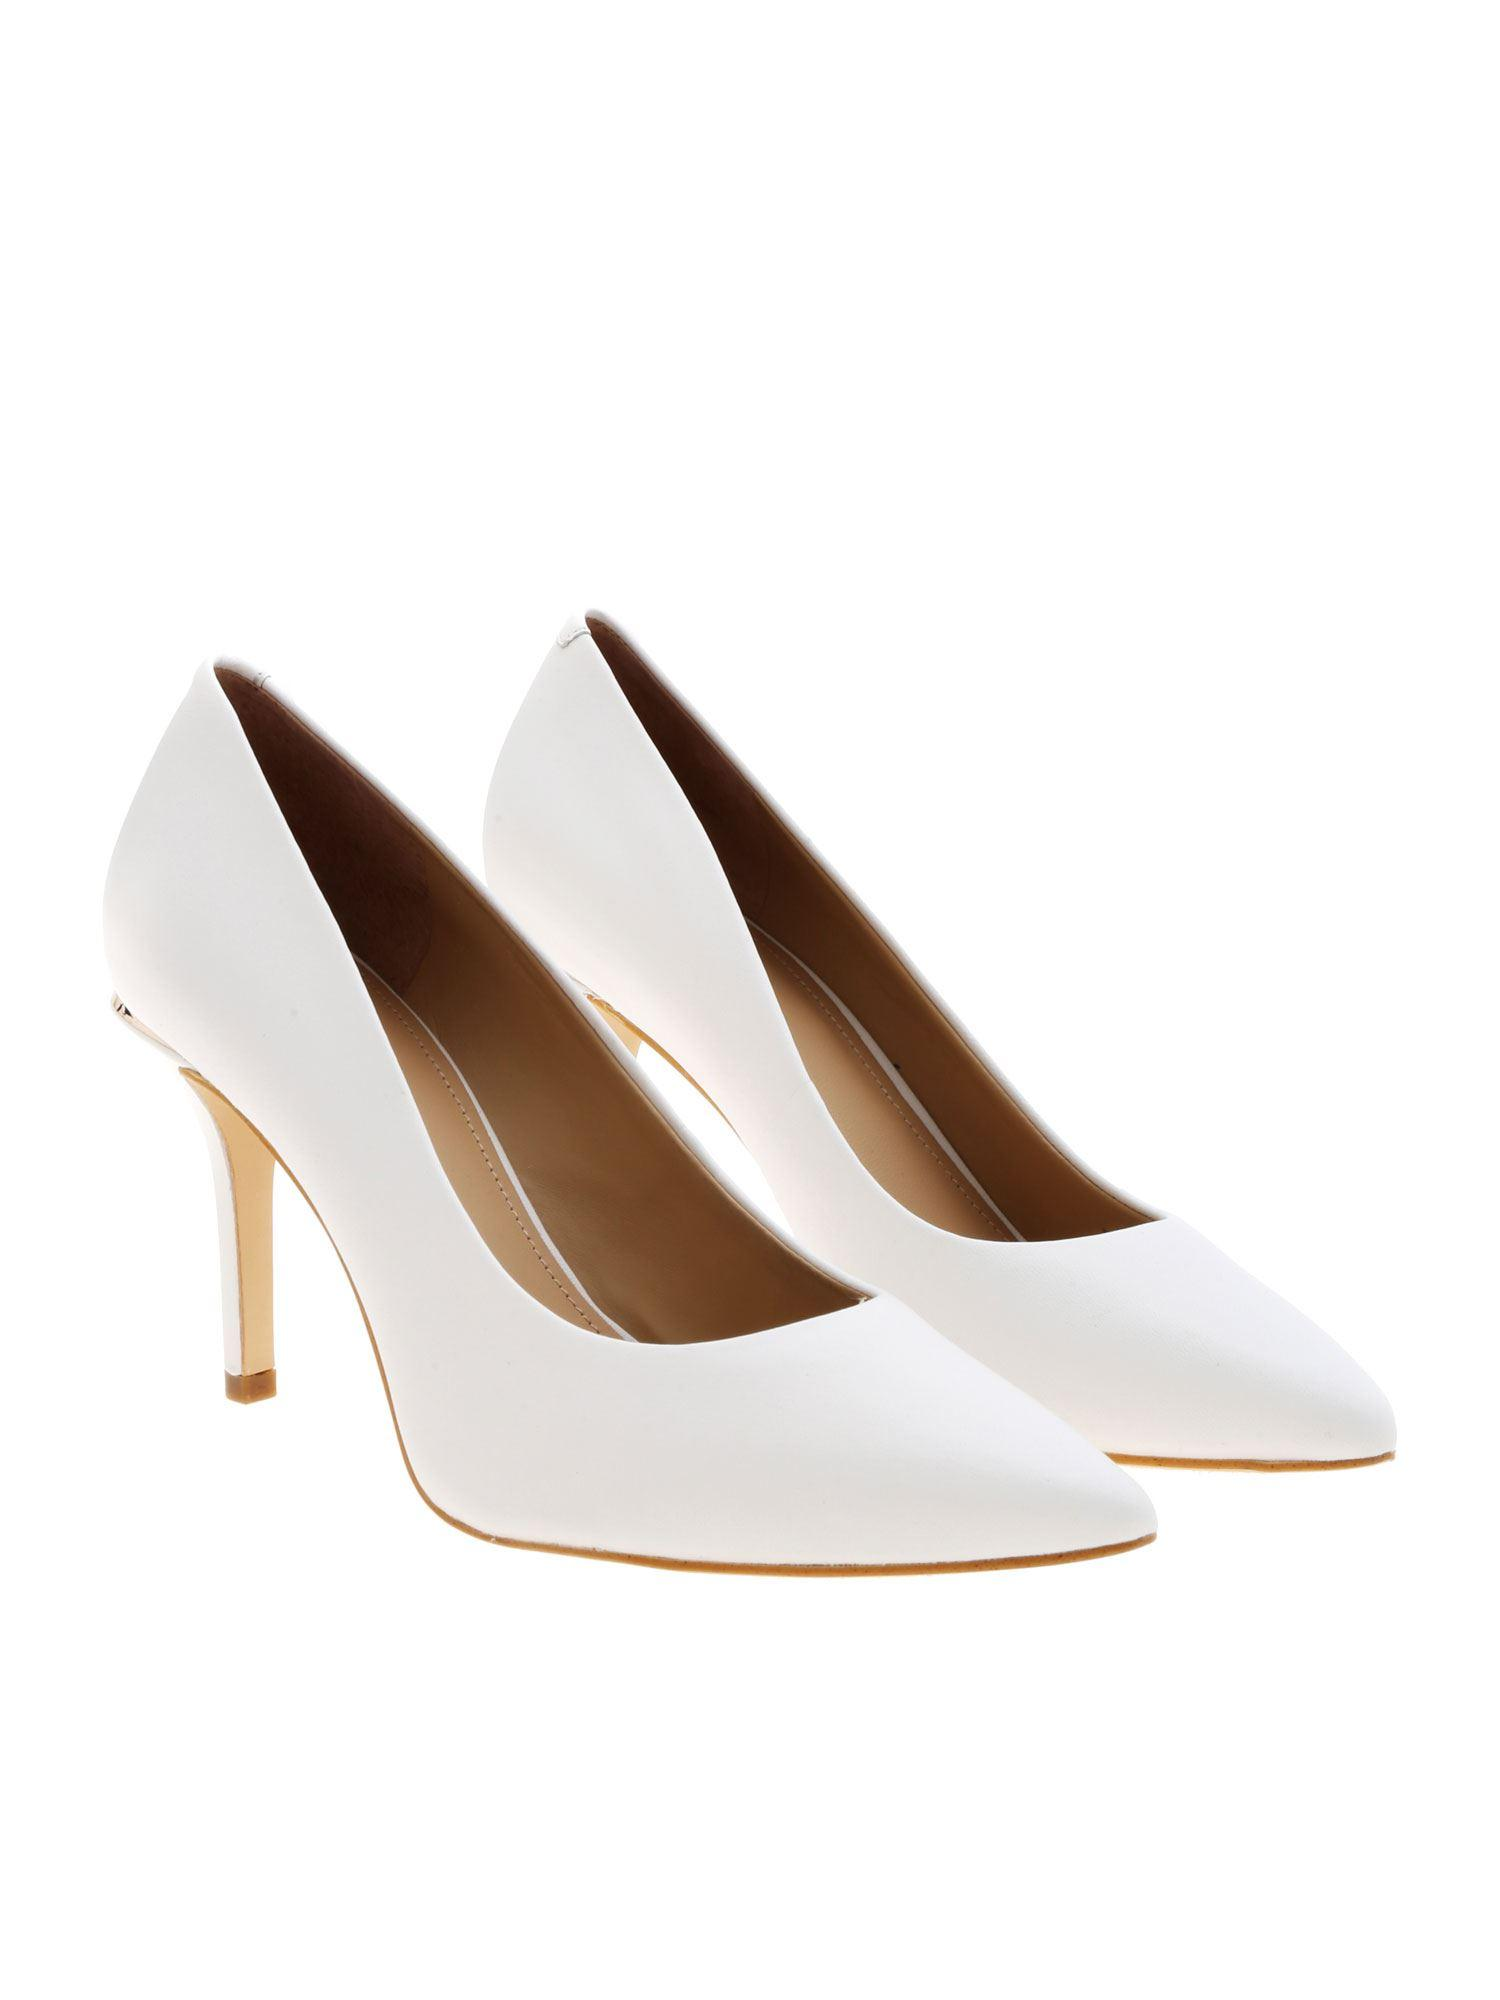 new style a48fa cc176 Women's Okley Décolleté In White Leather